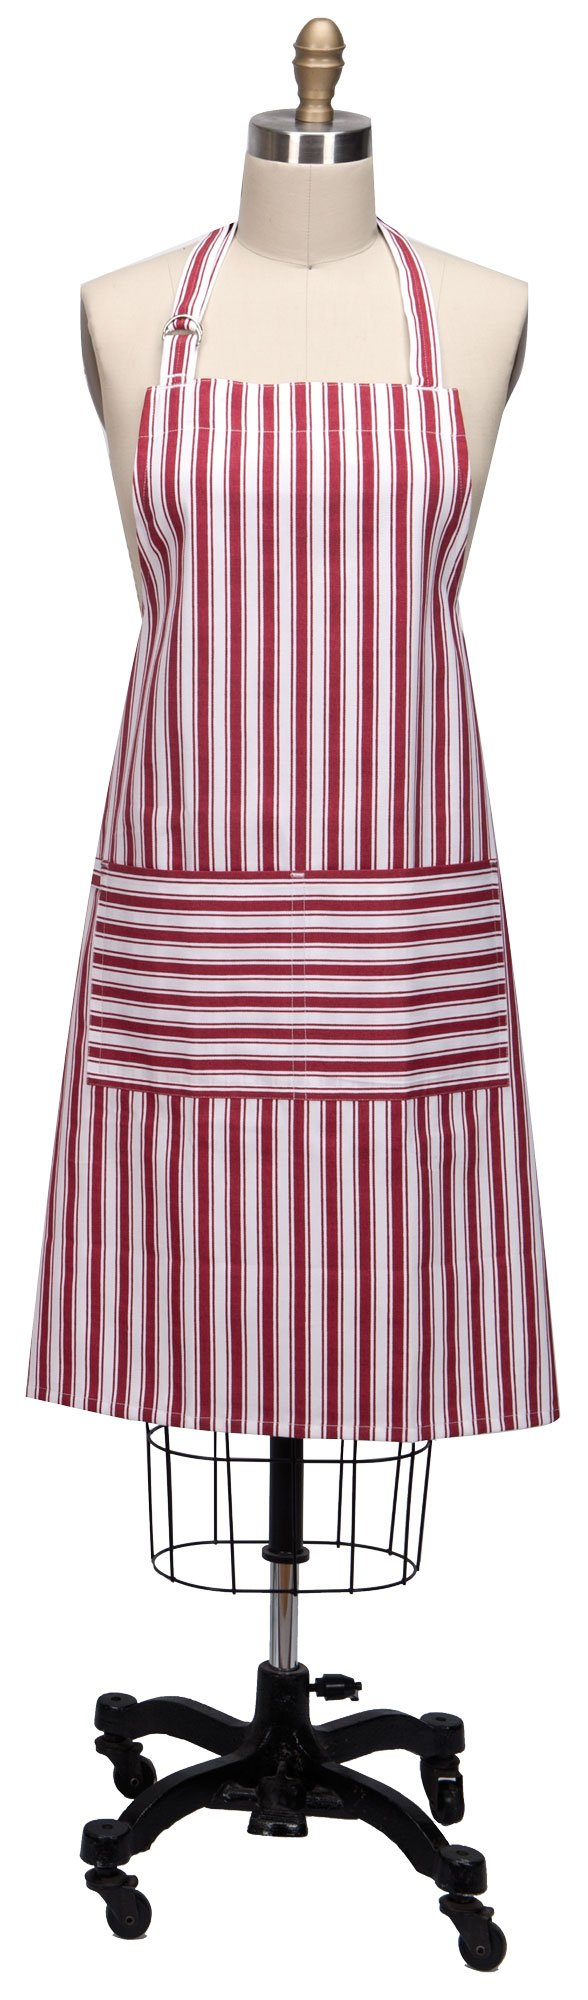 Kay Dee Designs R9211 Everyday Basics Chef Apron, Cardinal by Kay Dee